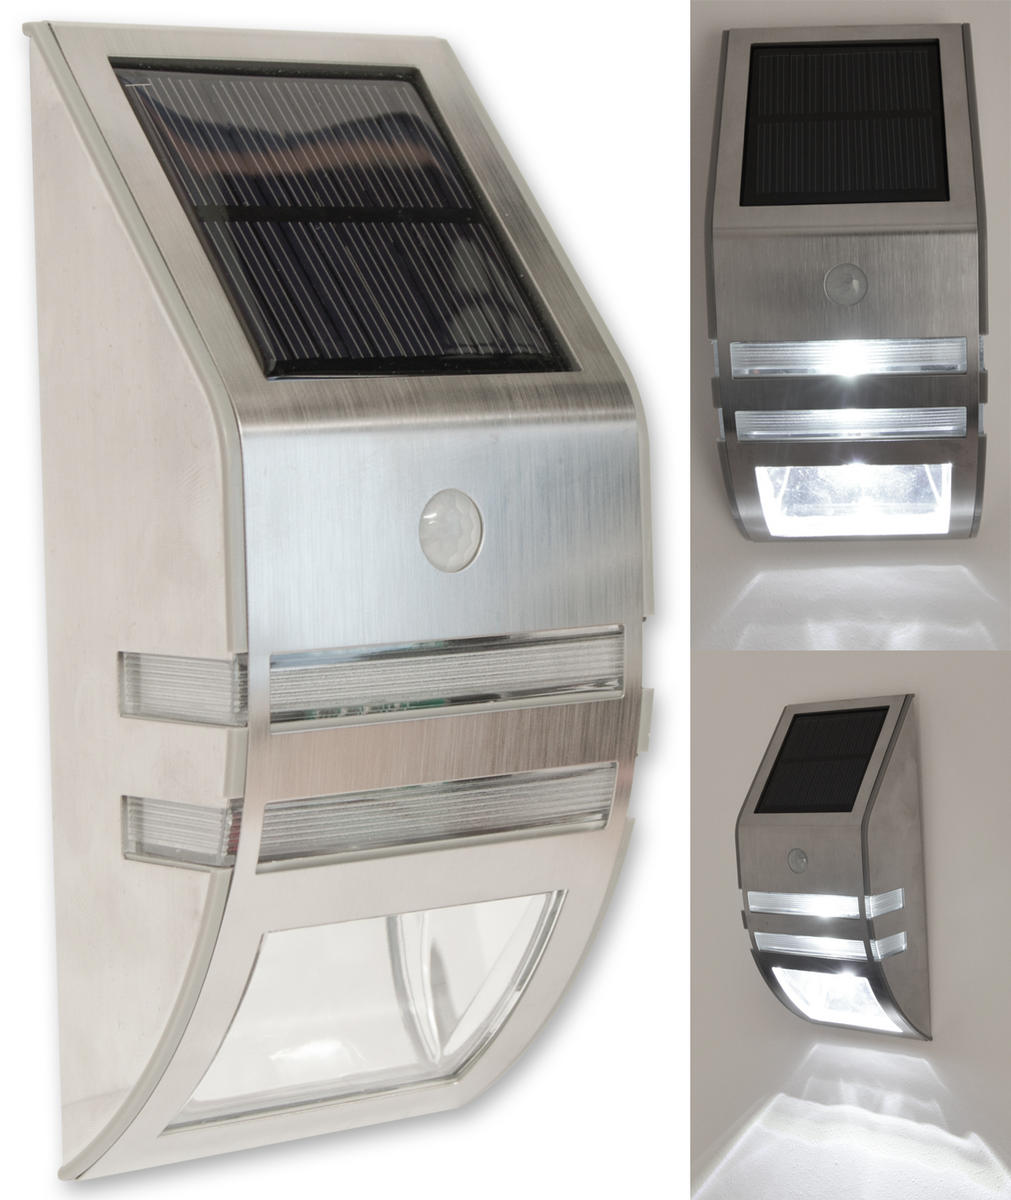 Woodside LED Solar Powered Motion Light